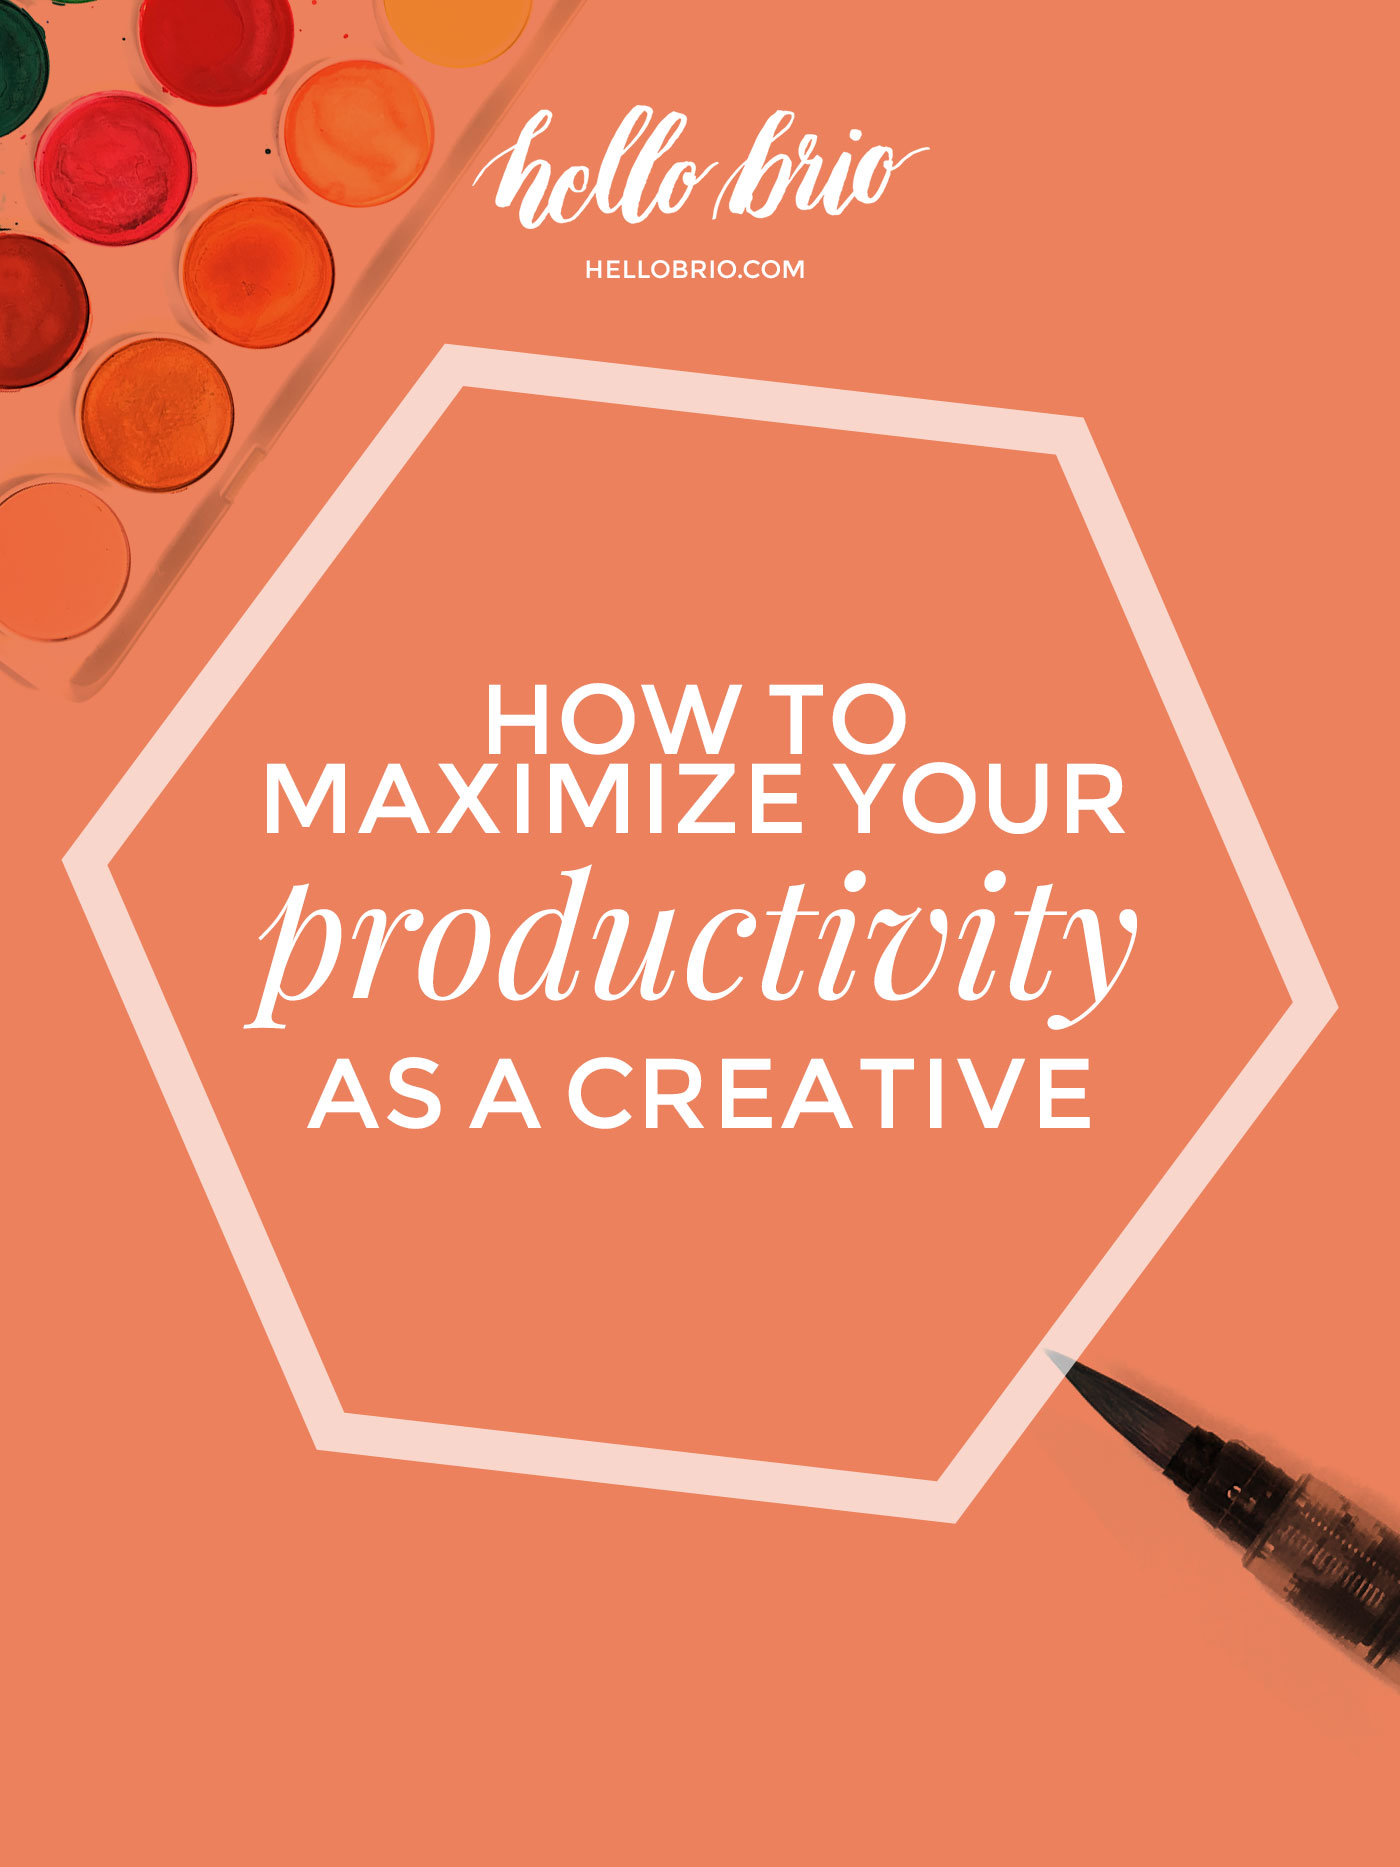 How to maximize your productivity as a creative